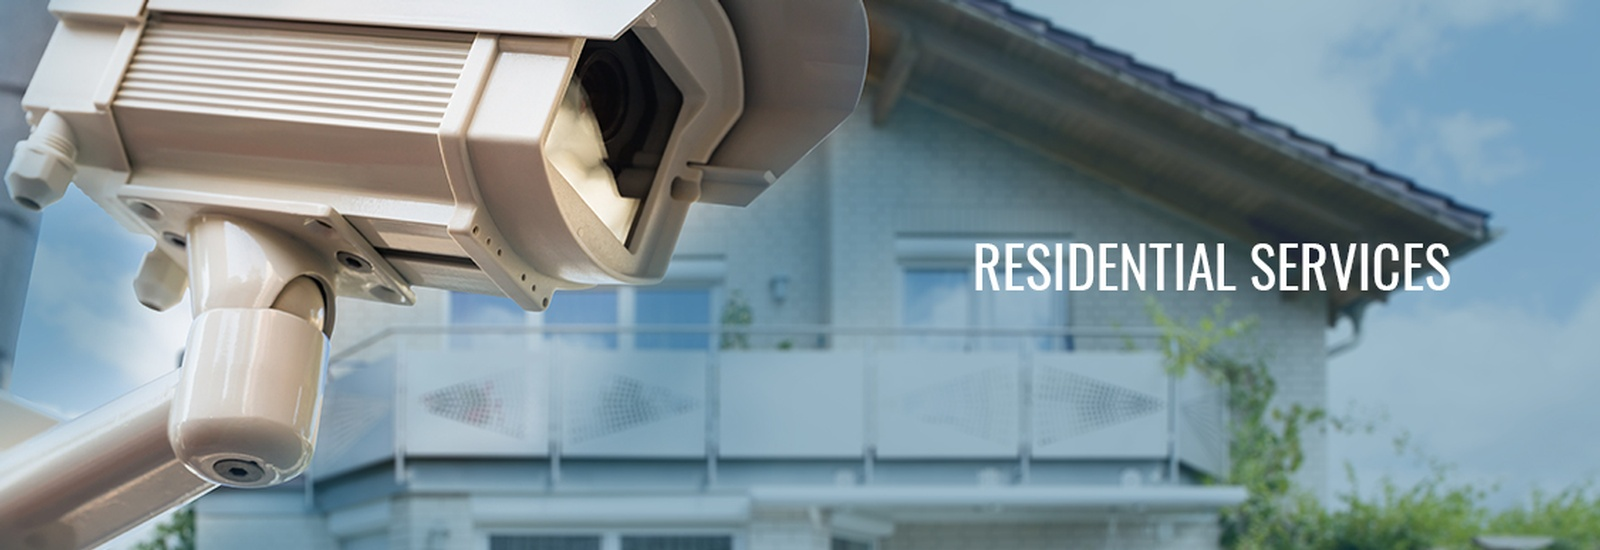 Residential Security System Services by Sky Security Ltd. -Commercial Security System Installation Langley